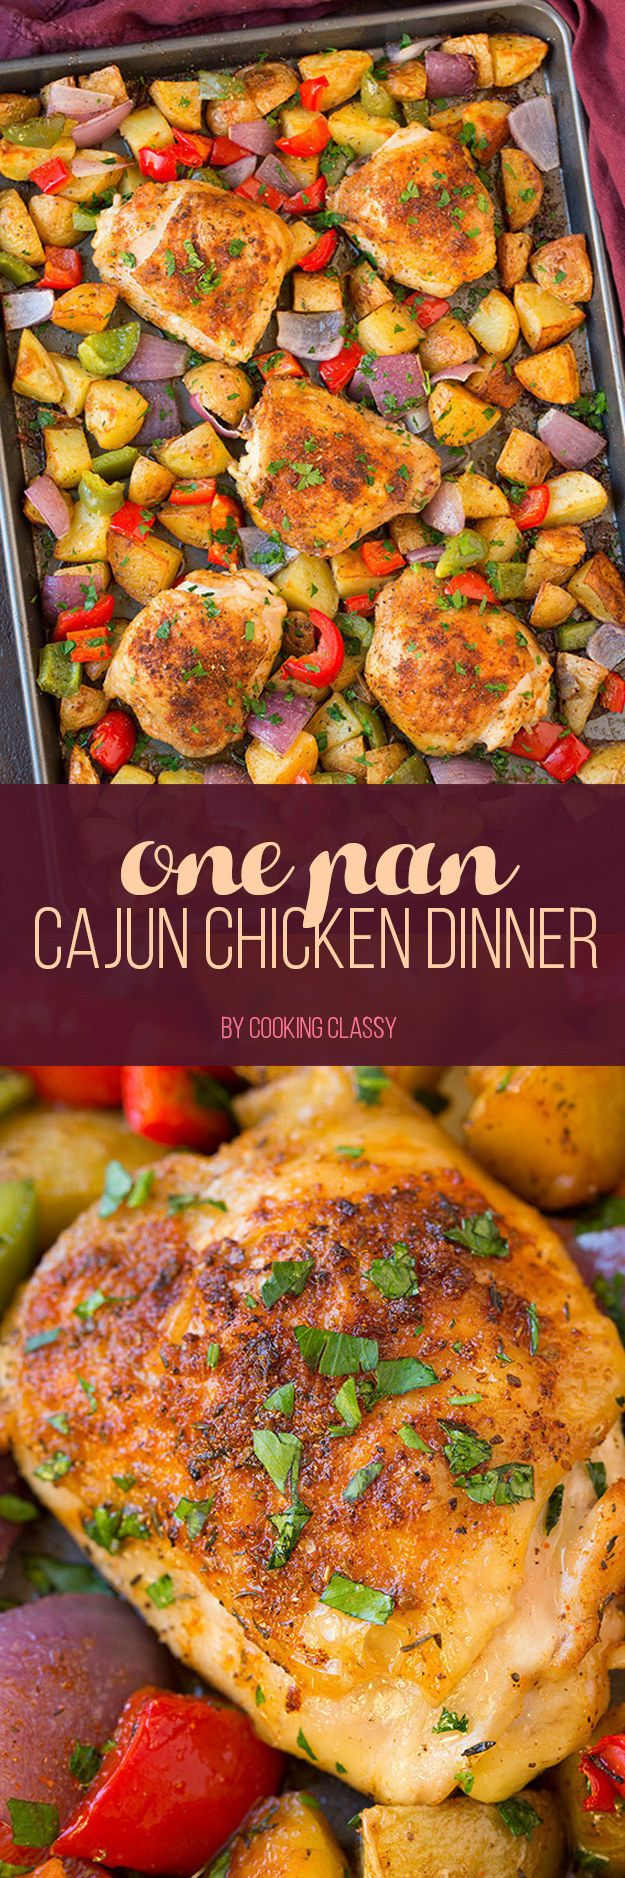 349 best chicken recipes images on pinterest chicken cooking food one pan cajun chicken dinner forumfinder Choice Image